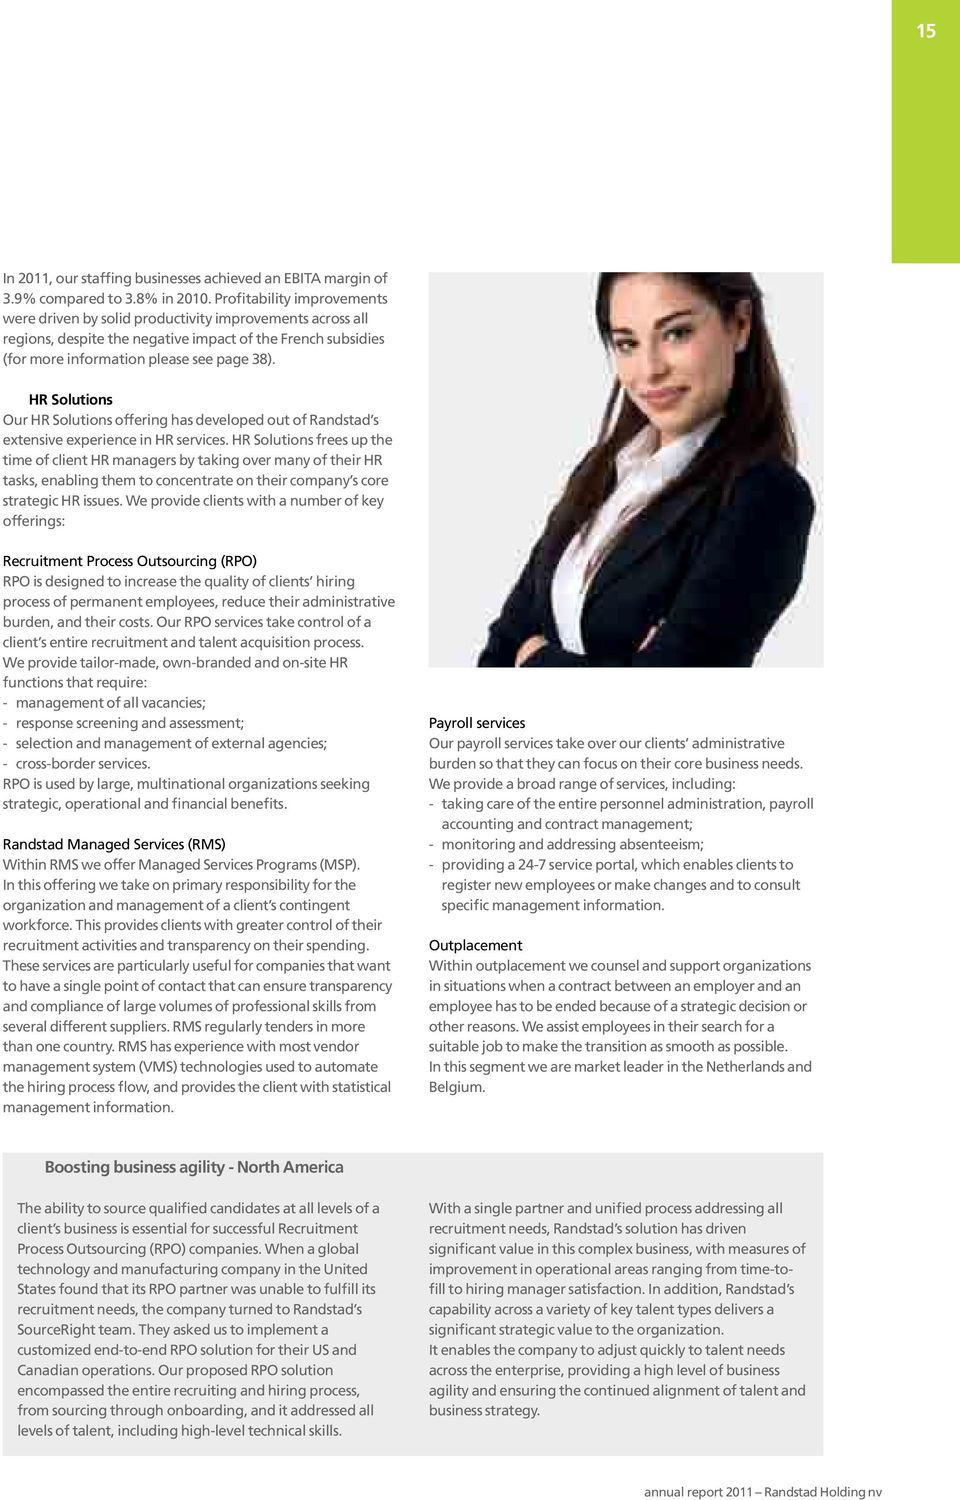 HR Solutions Our HR Solutions offering has developed out of Randstad s extensive experience in HR services.